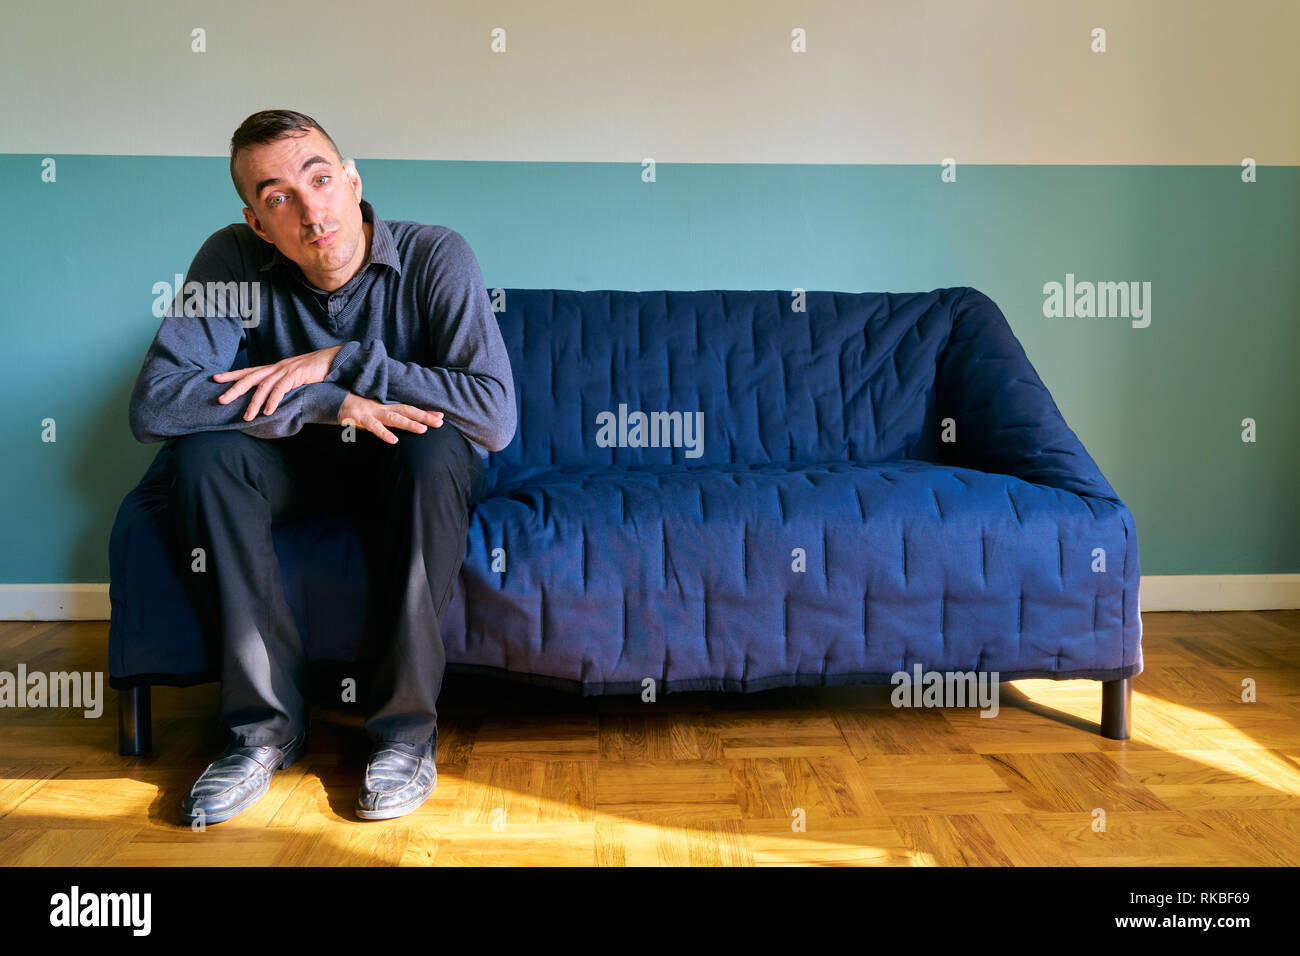 Handsome guy posing - lazy man sitting on the sofa - Stock Image